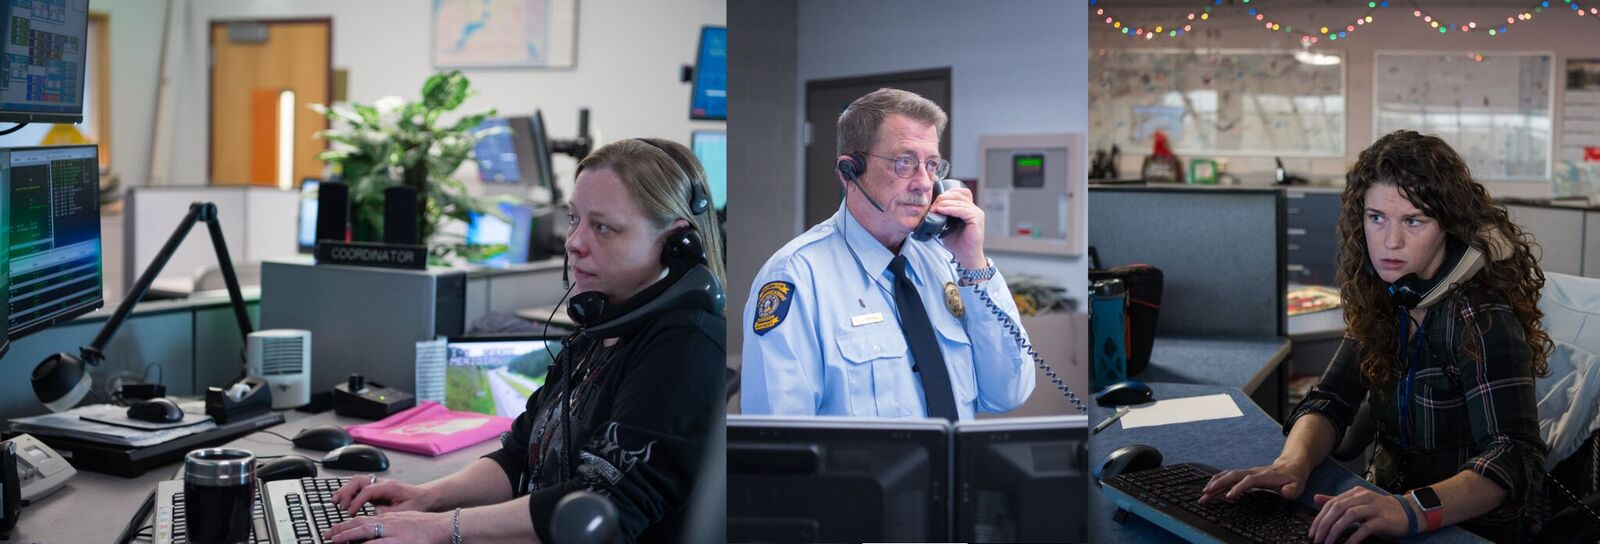 Become A Dispatcher